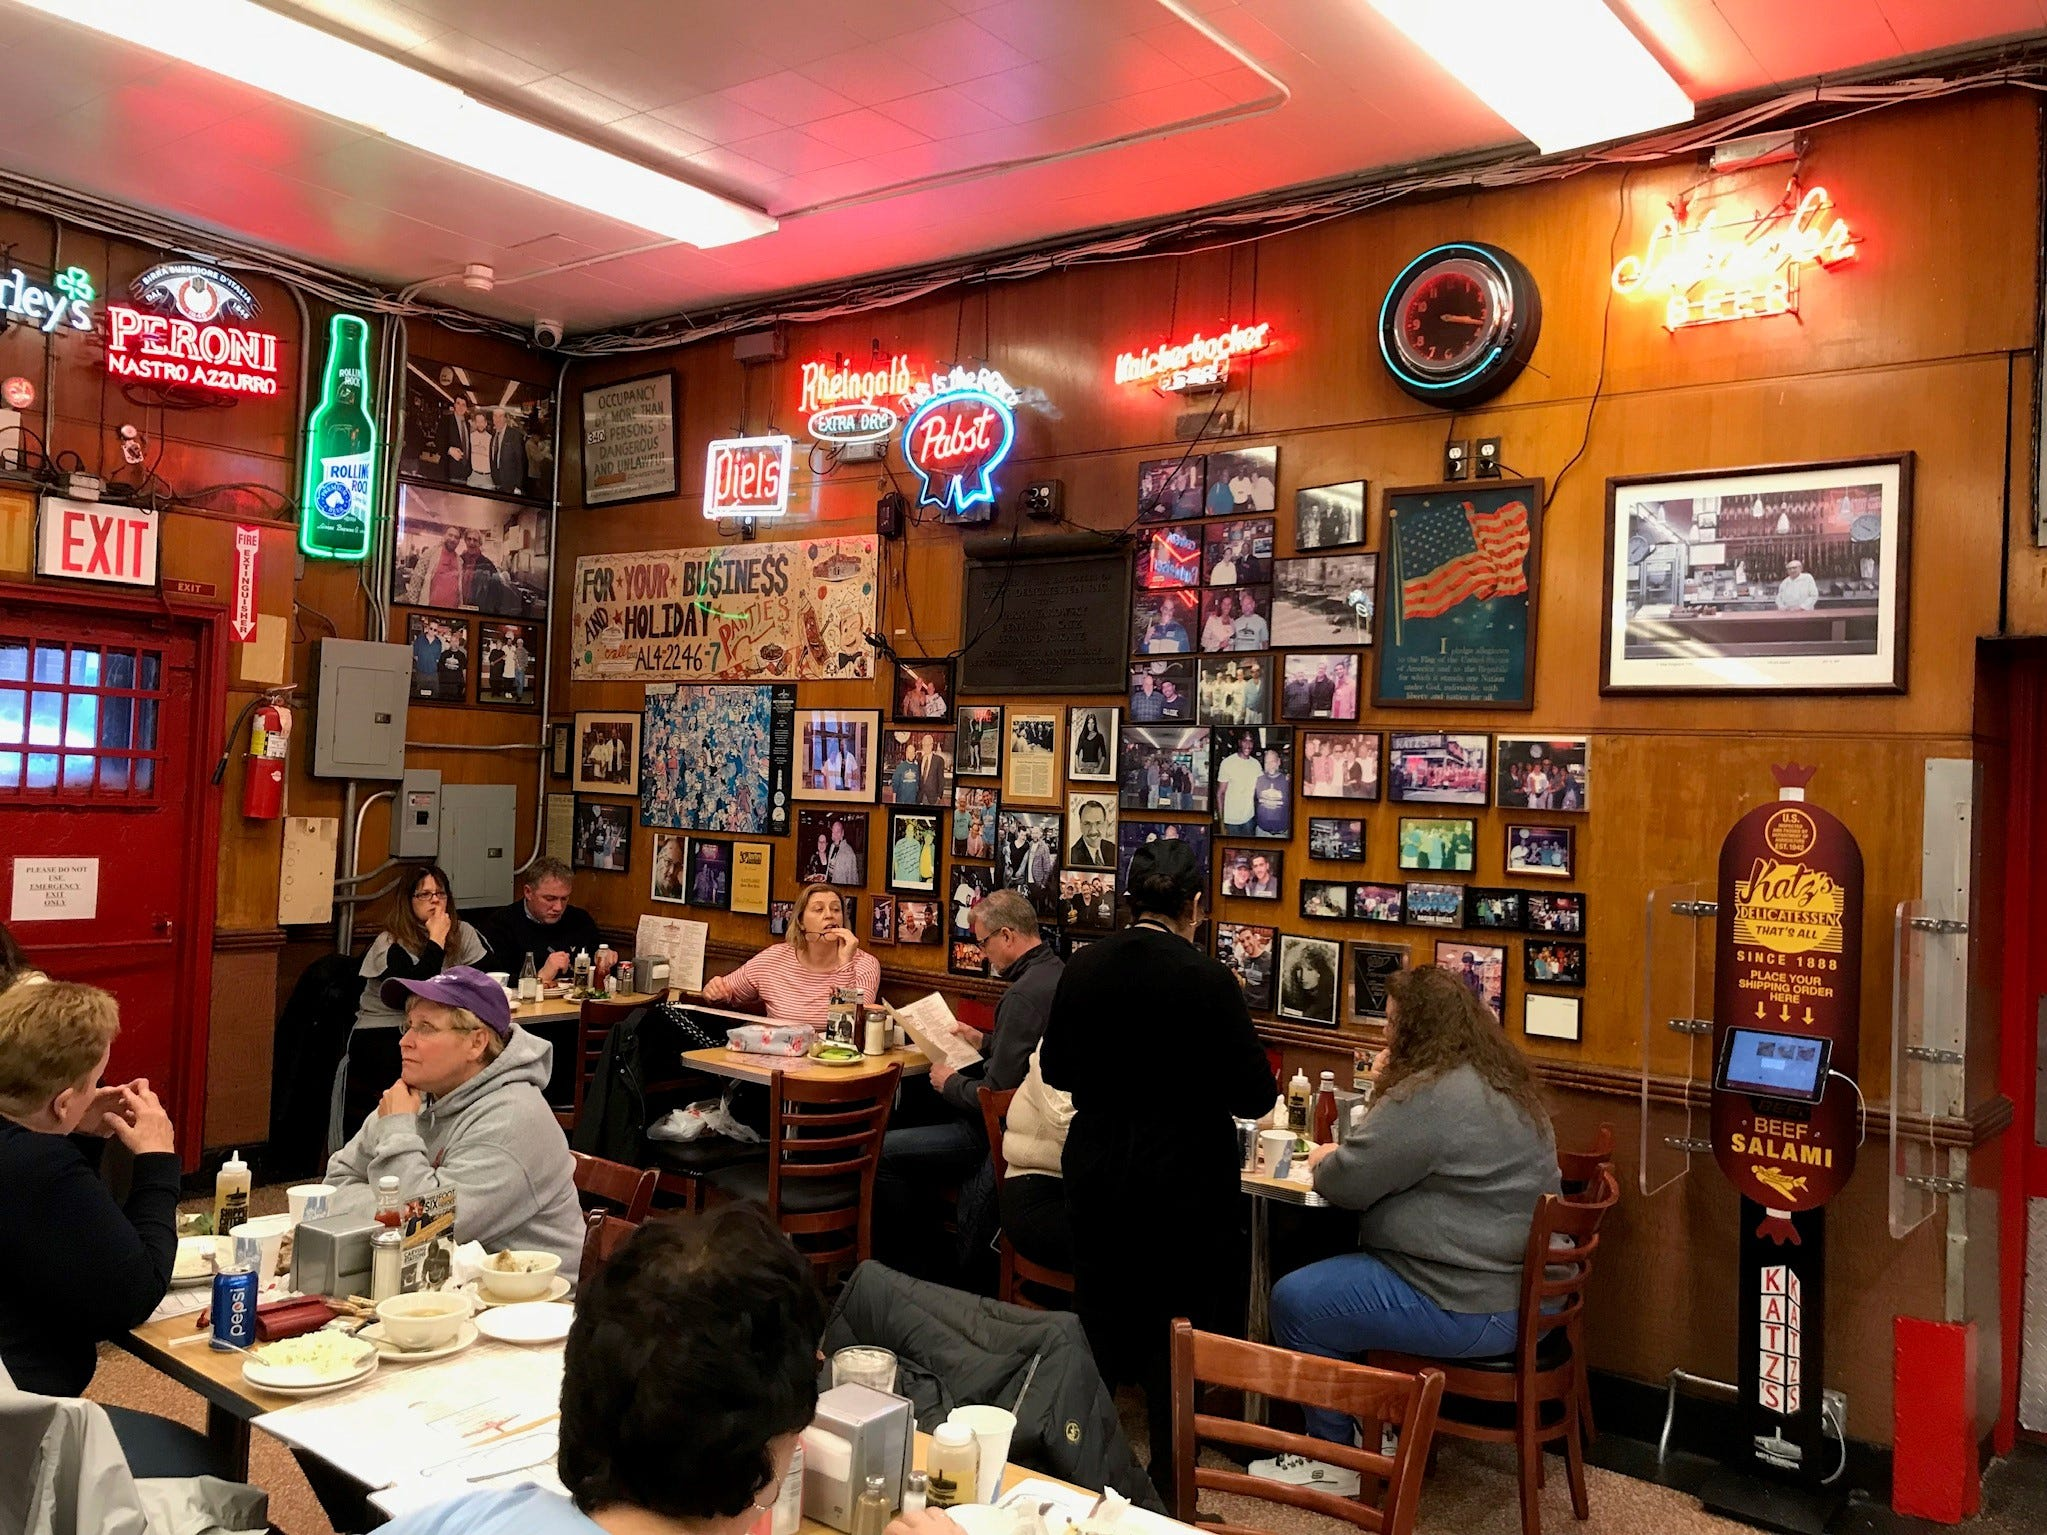 One corner of frenetic Katz's Deli, jammed with neon ads, old posters and framed photos.